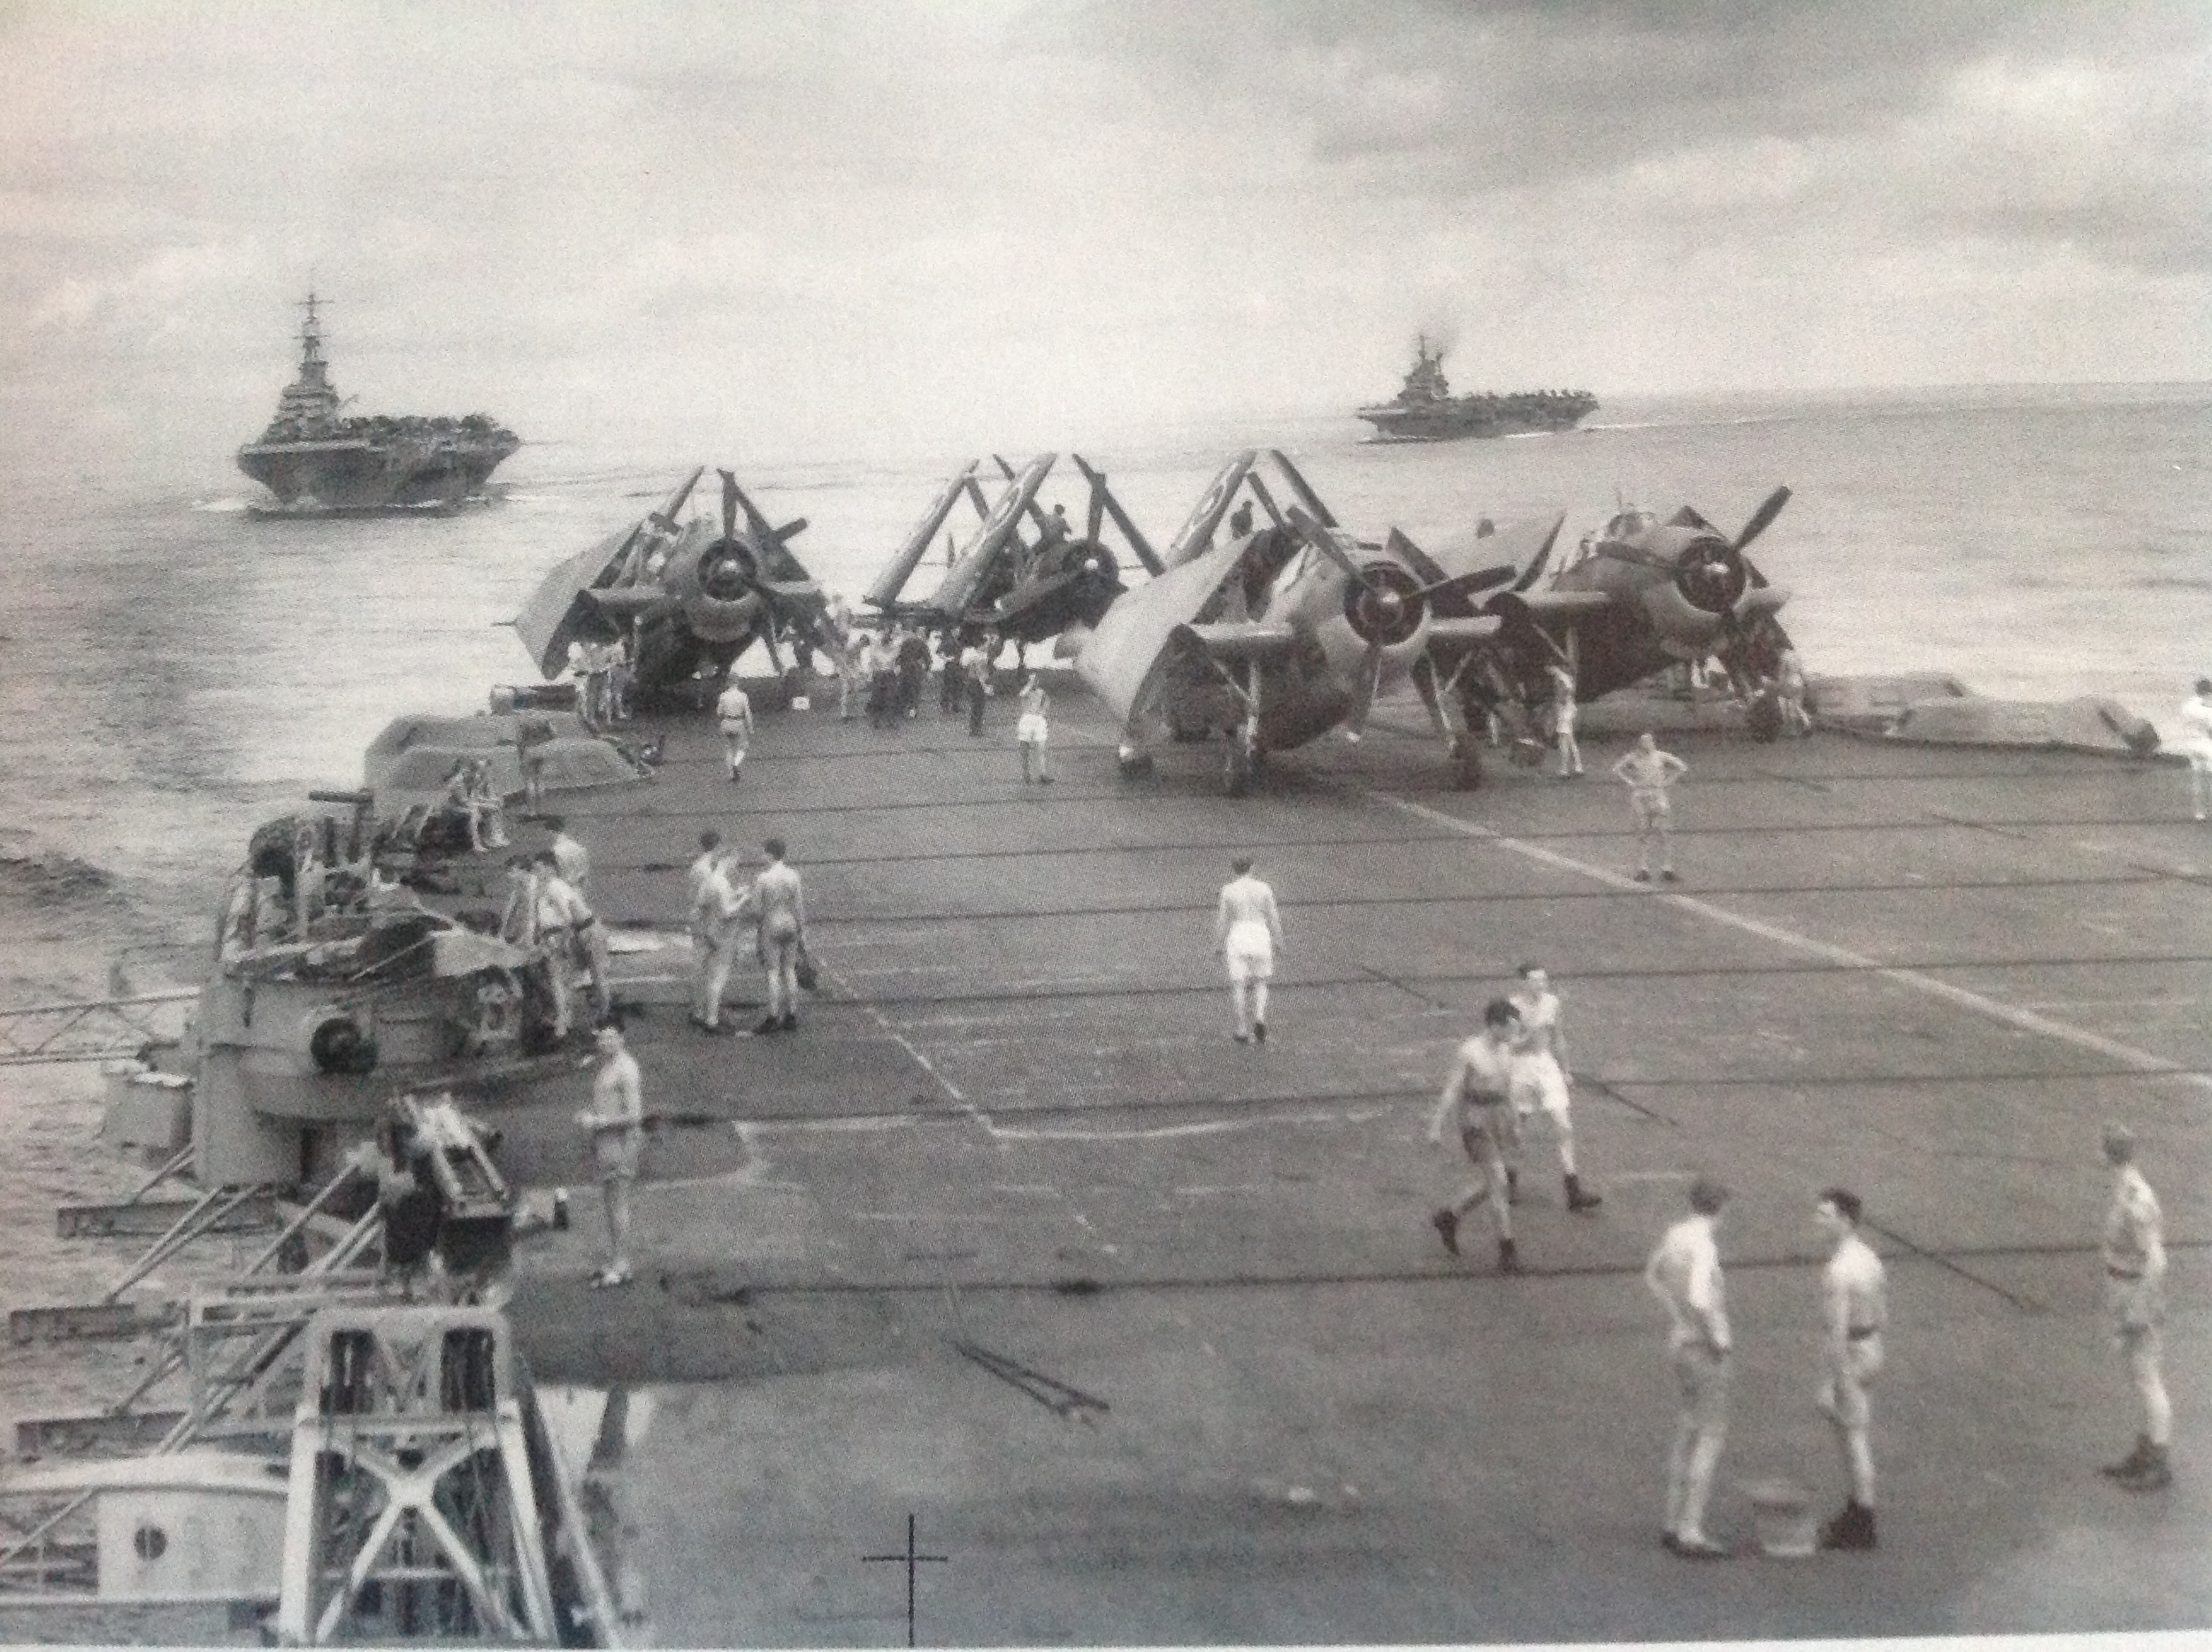 HMS VICTORIOUS and IMPLACABLE seen above Avenger and Chance-Vought Corsair aircraft of HMS FORMIDABLE as the ships turned into position.